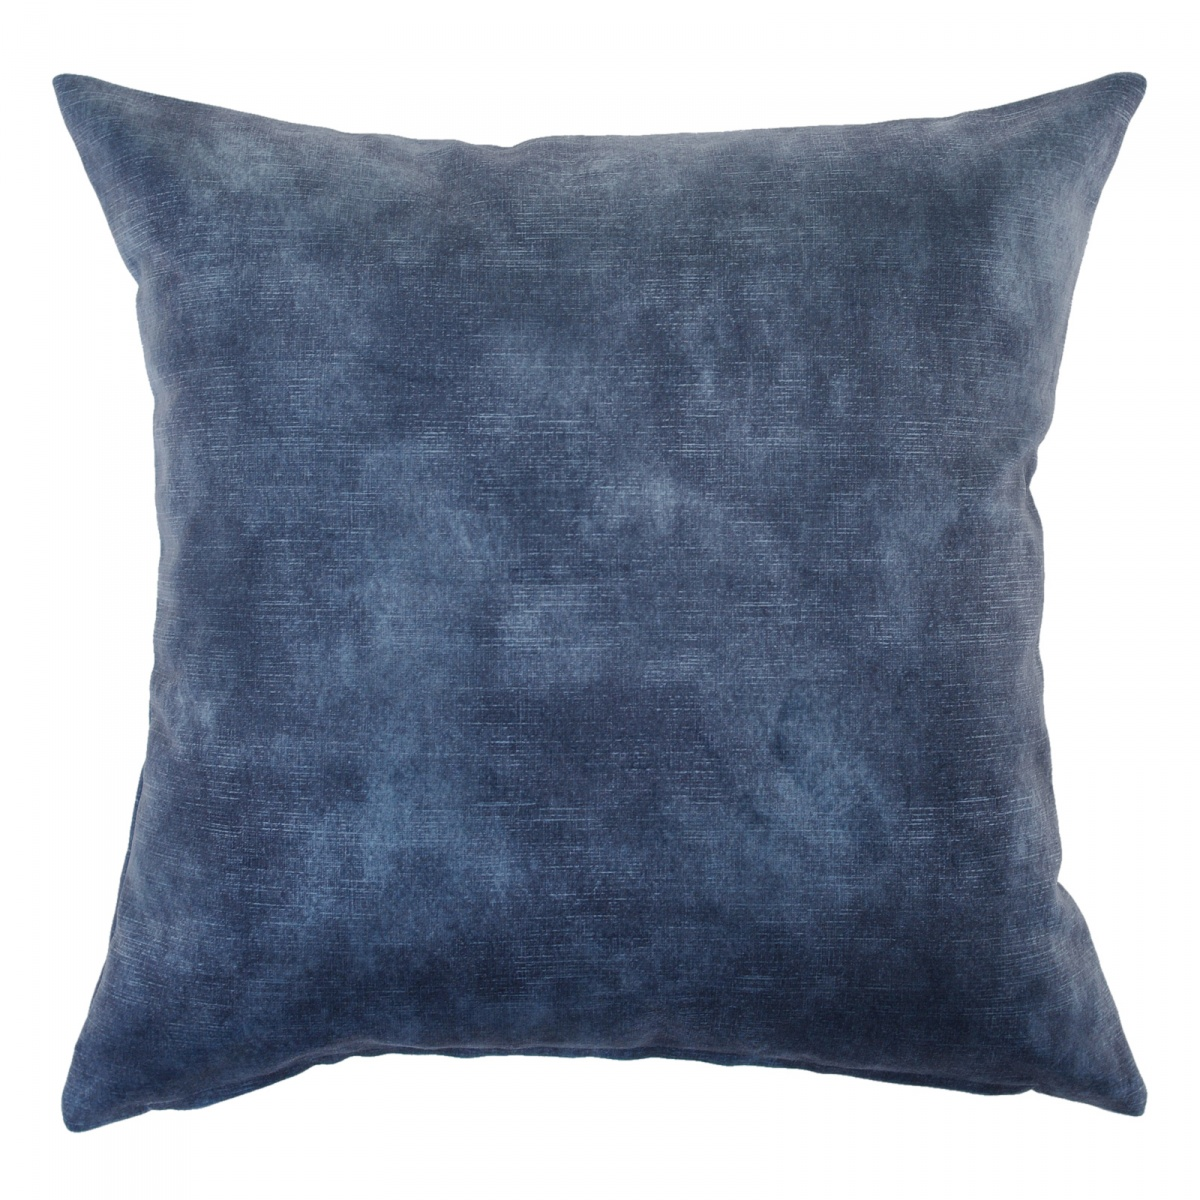 Lovely Atlantic Velvet Cushion - 45x45cm